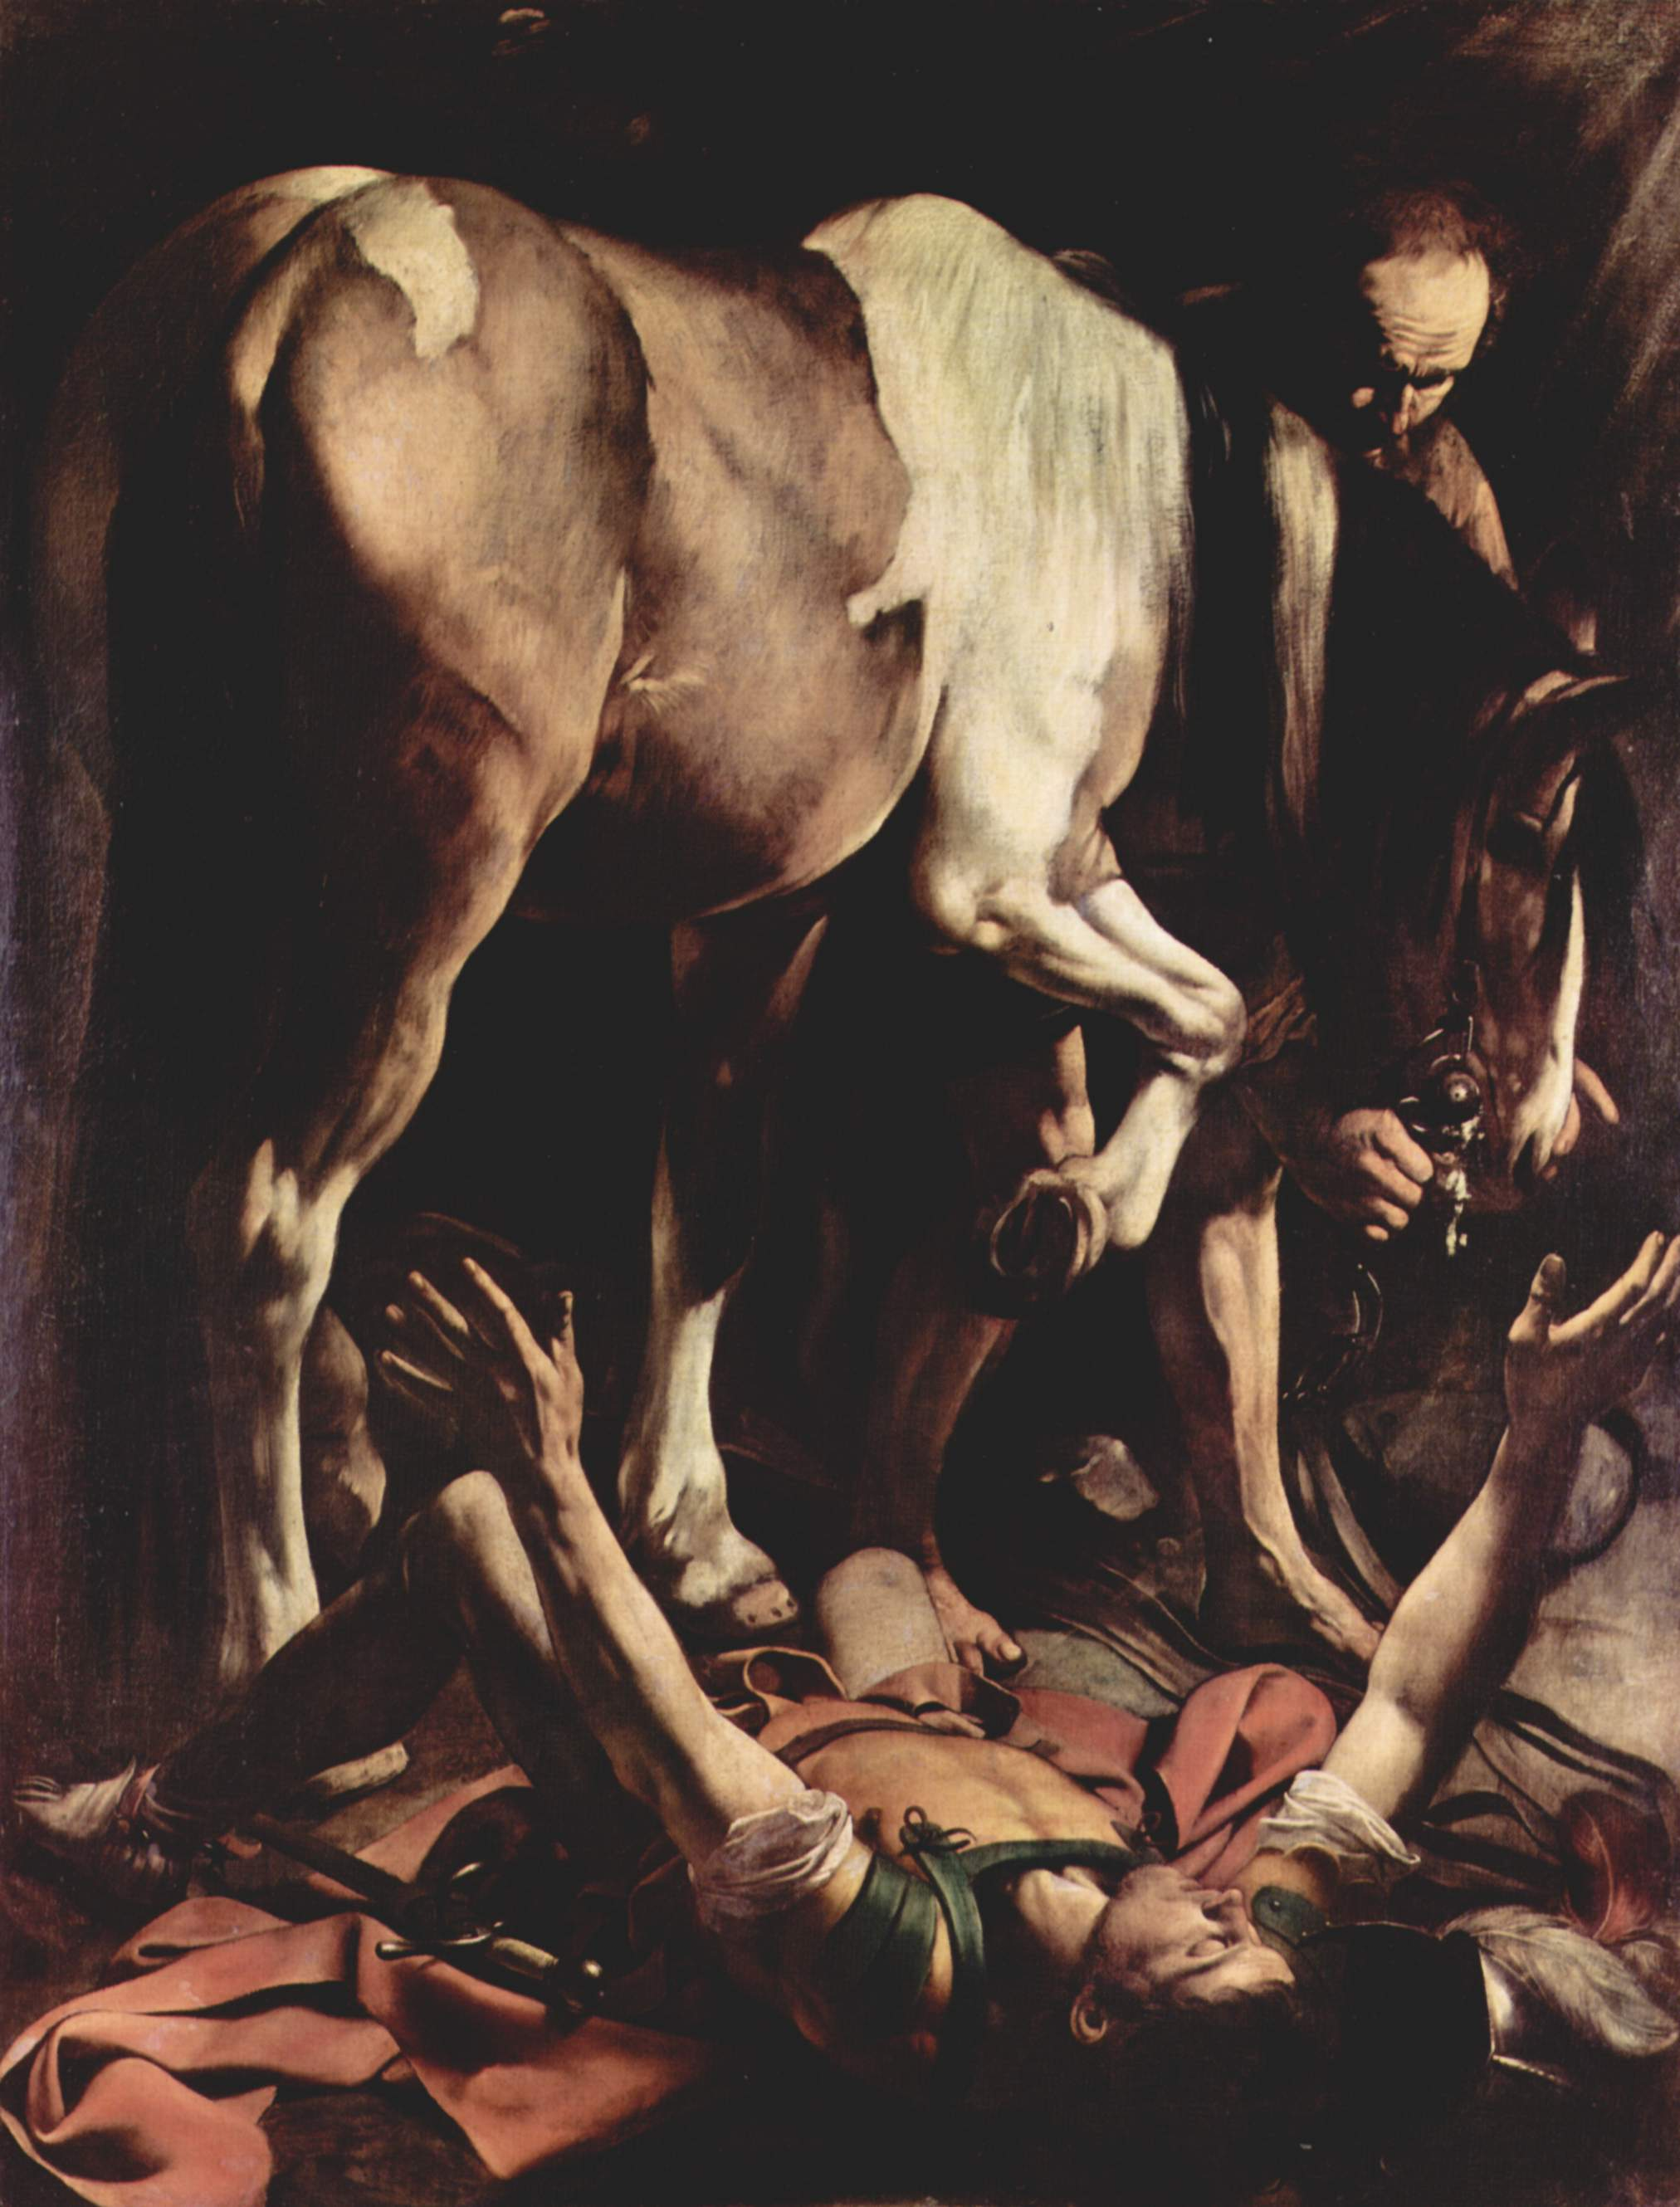 http://upload.wikimedia.org/wikipedia/commons/a/a5/Michelangelo_Caravaggio_036.jpg